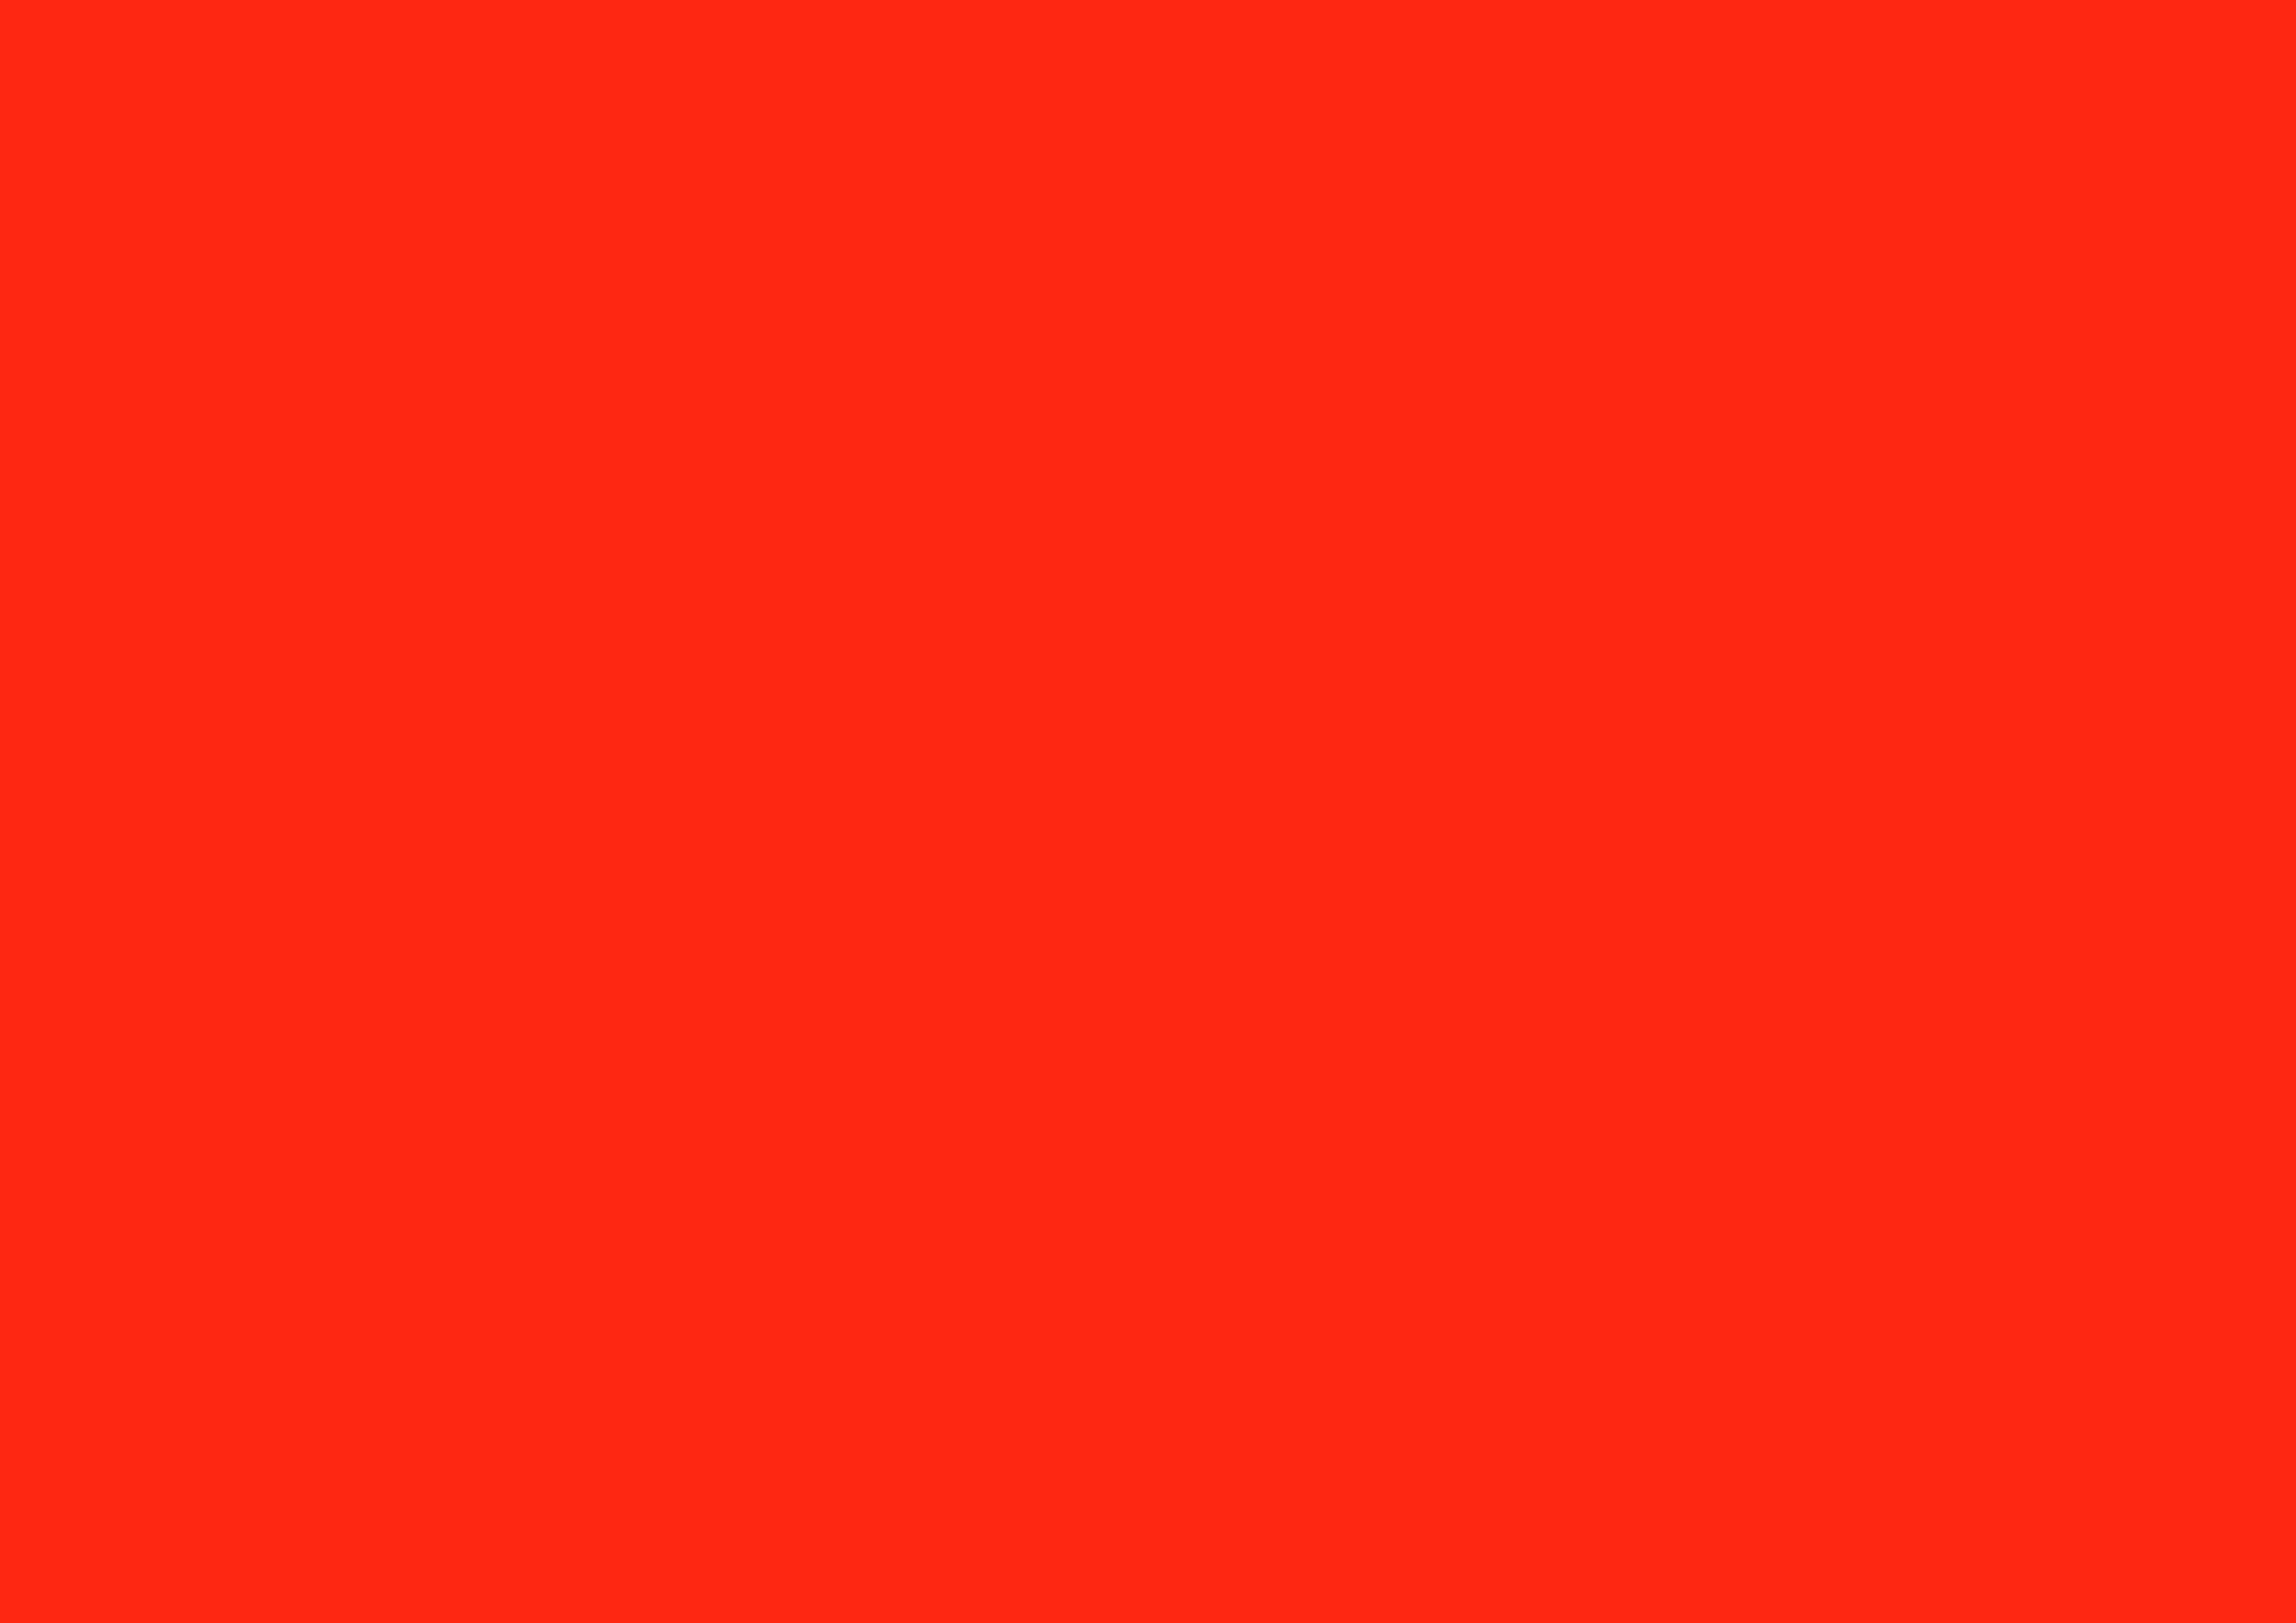 3508x2480 Red RYB Solid Color Background